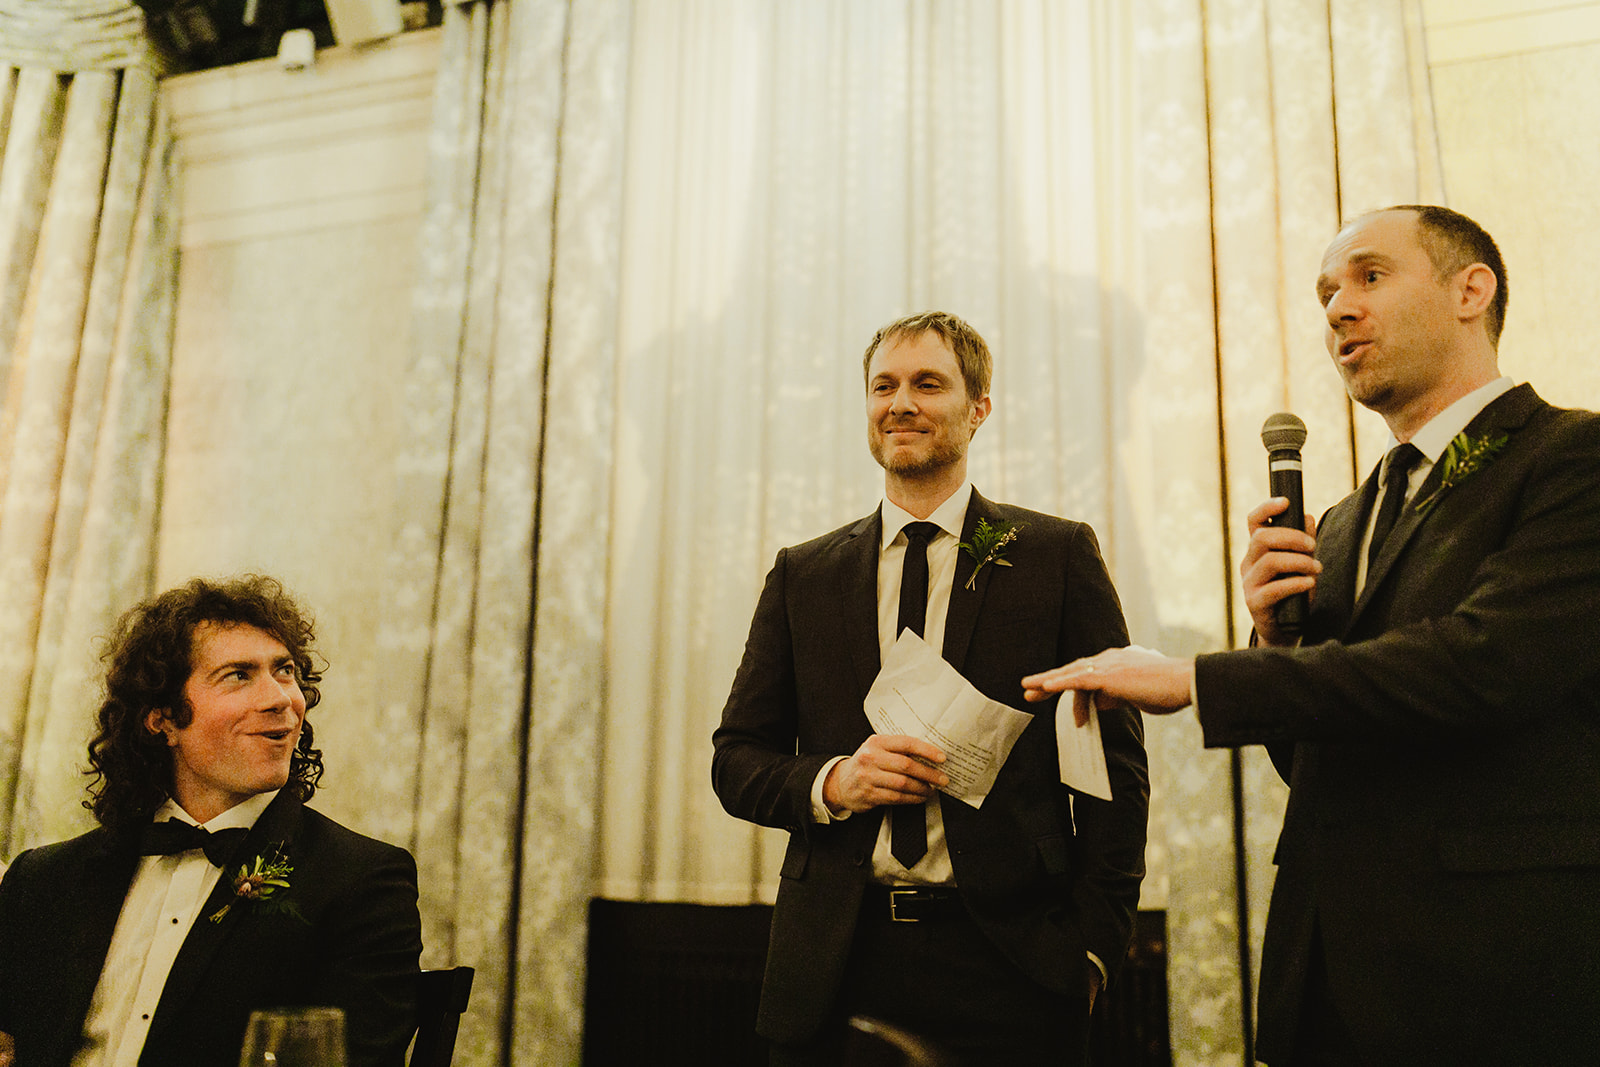 A groom and his best men sharing speeches during his wedding